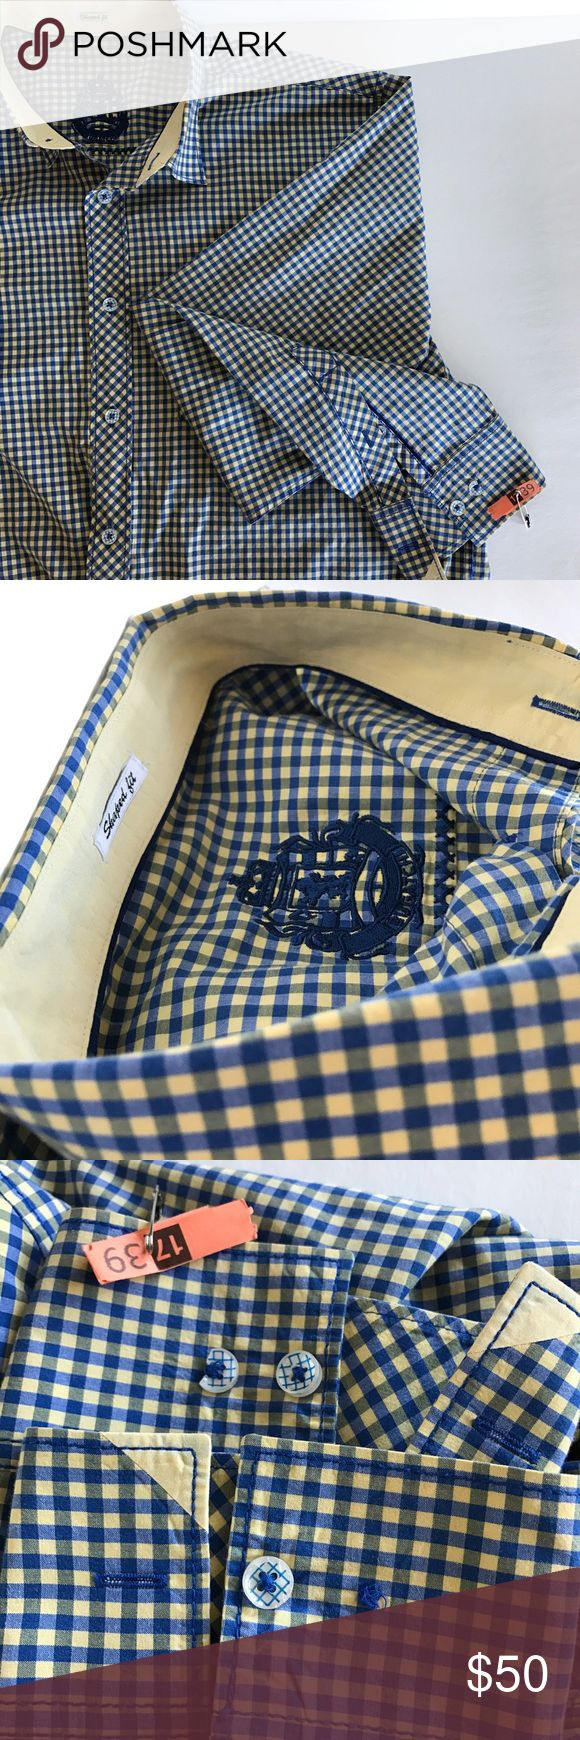 HP 2/6 Bugatchi Dress Shirt Men's Bugatchi Dress Shirt, Size Large, Blue & Yellow Plaid, has a missing button on one arm cuff and a broken button on the other cuff, however the extra buttons are still attached on tag. See pics. EUC, smoke free home. Bugatchi Shirts Dress Shirts